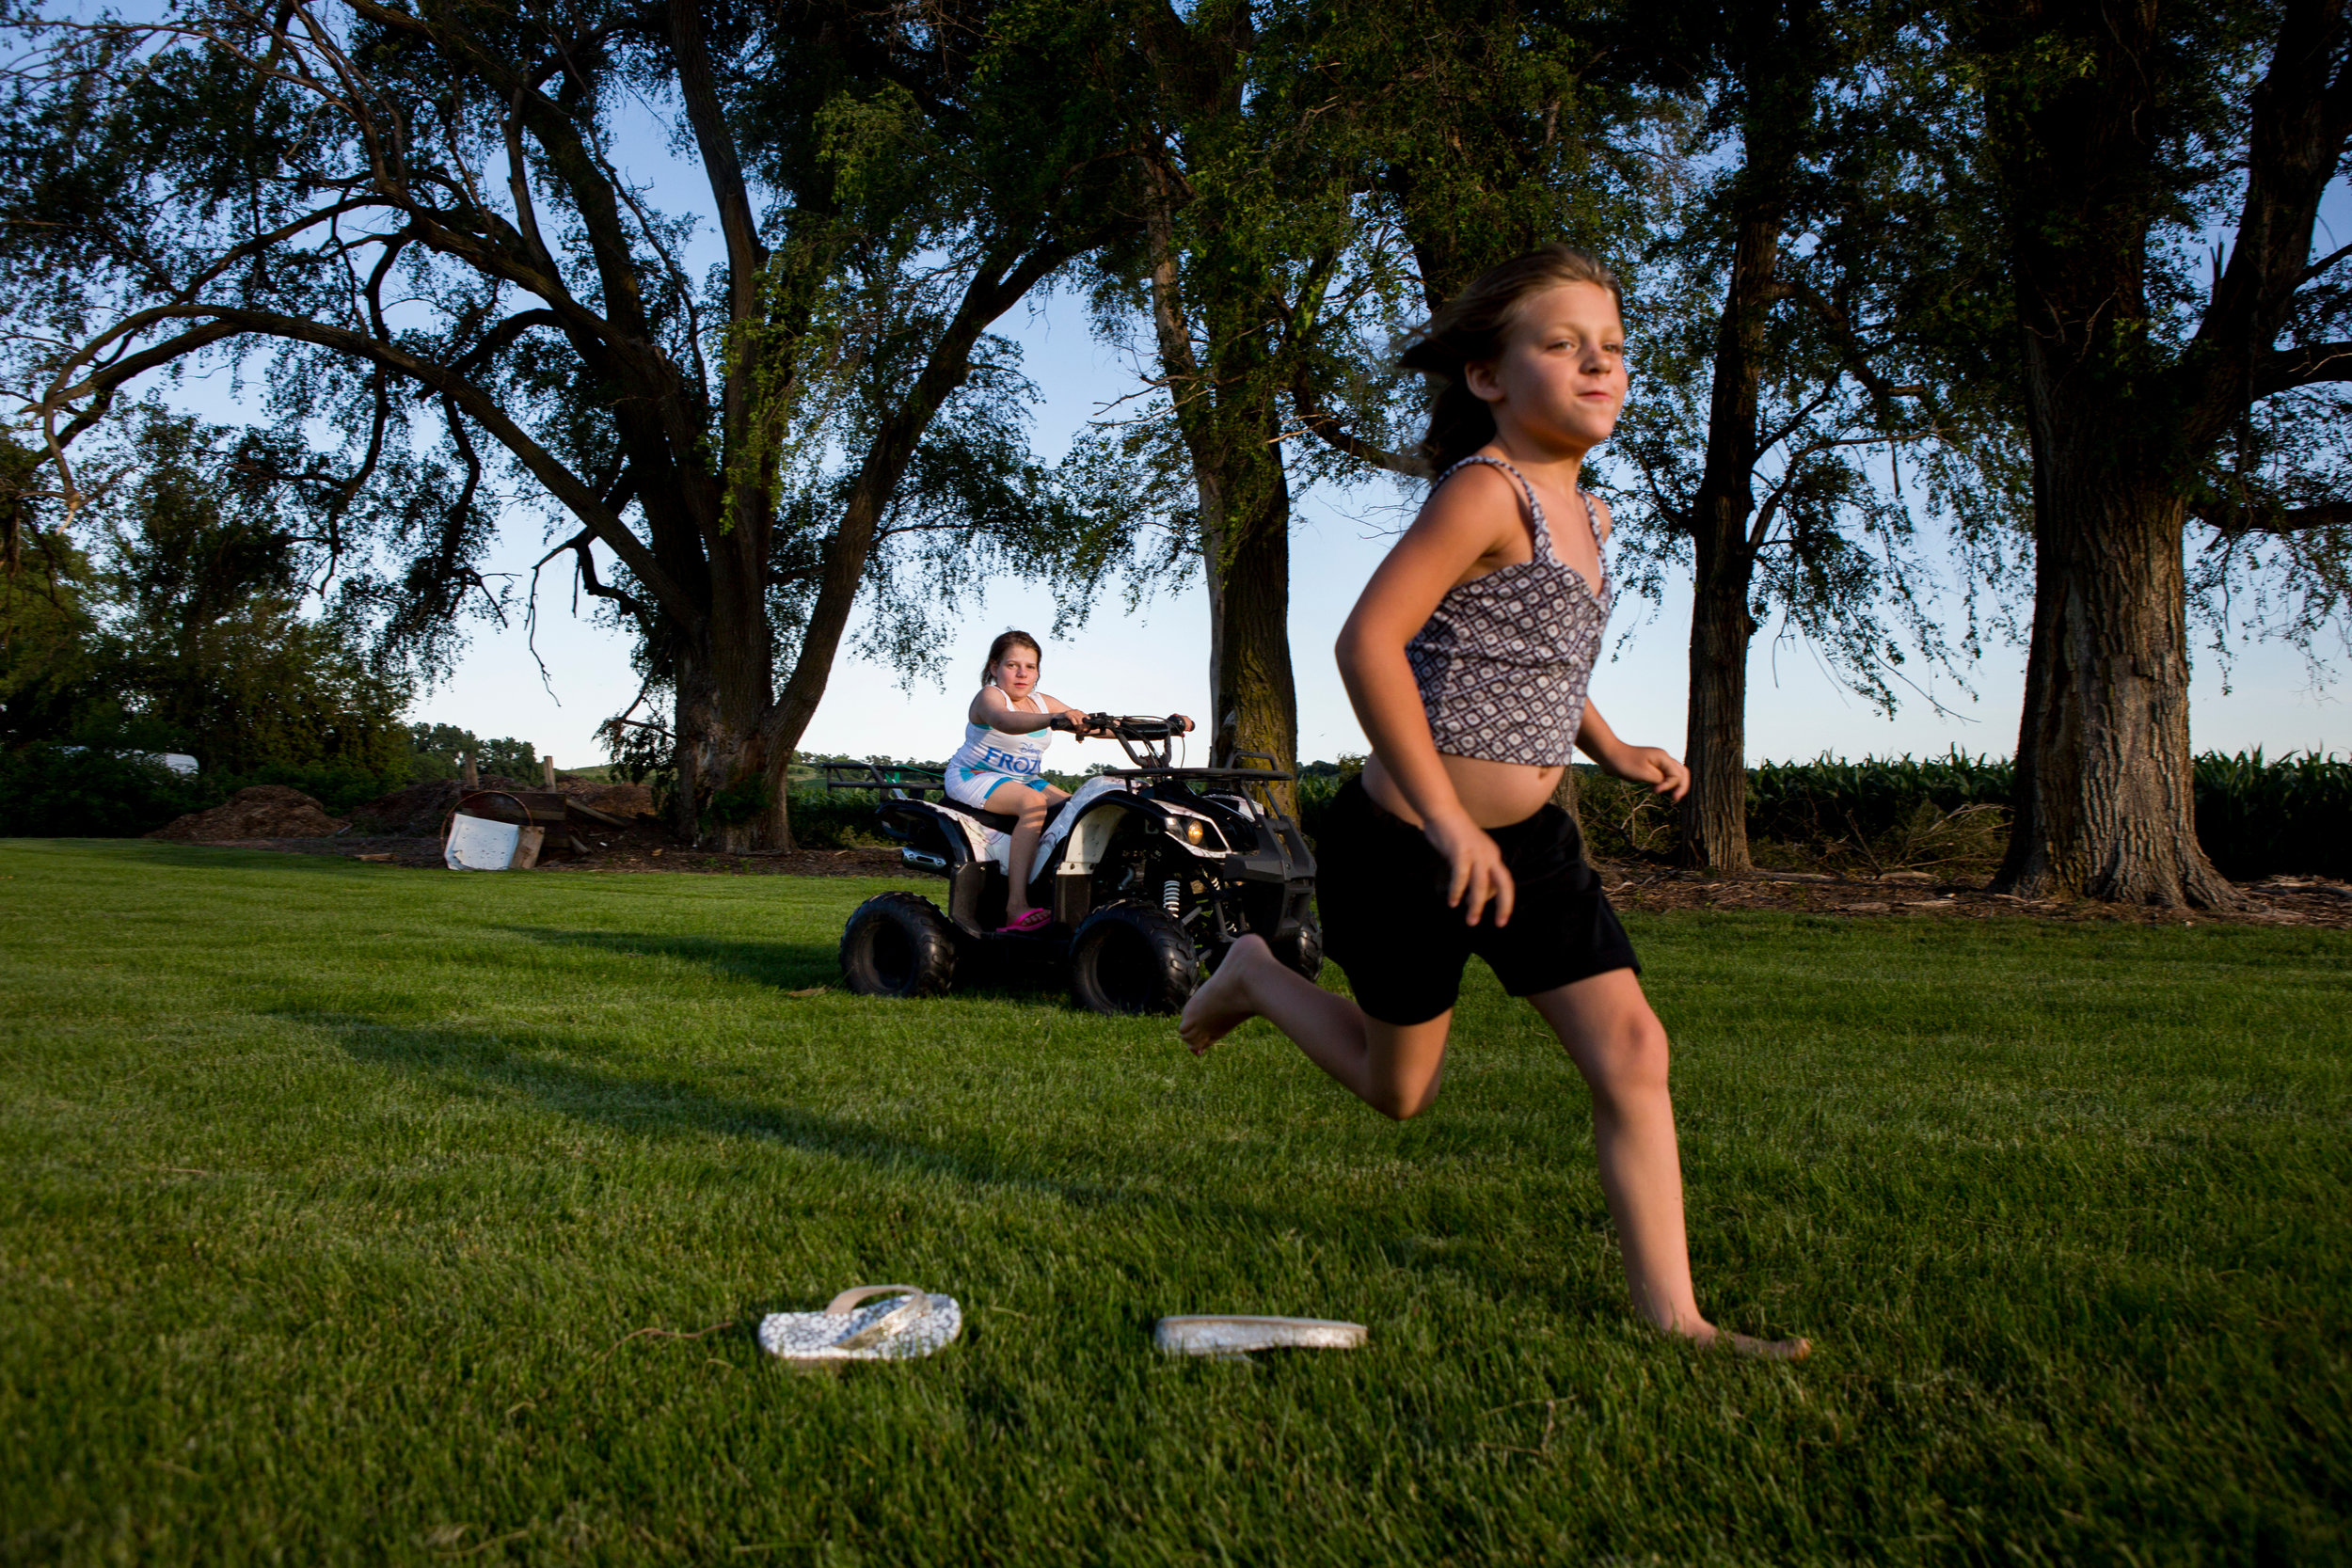 Emily rides on her four-wheeler while playing in the yard with Taylor-Jo. (Kristina Barker for Cosmopolitan)